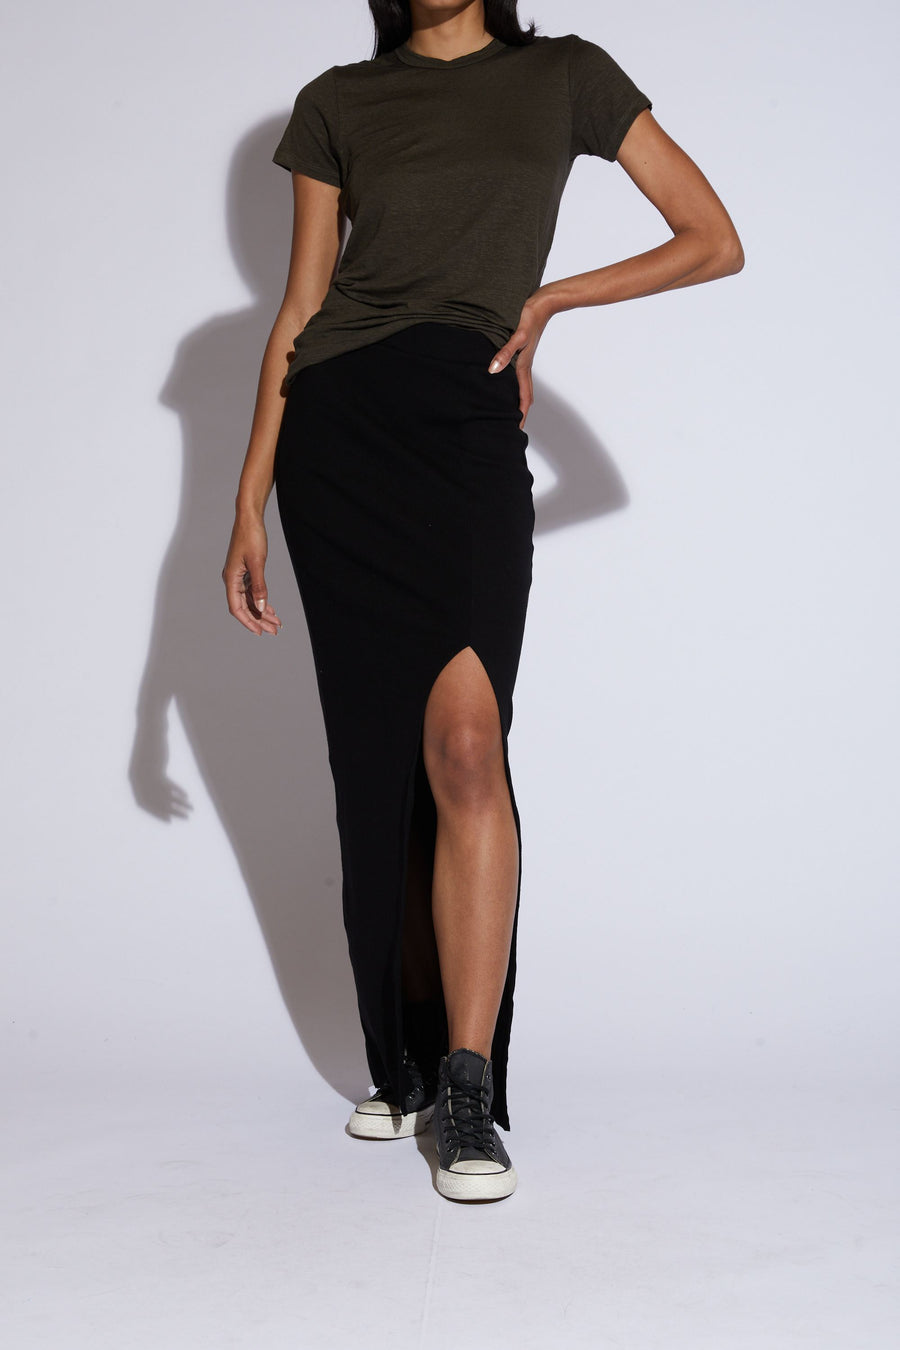 Arizia Slit Maxi Skirt - Black